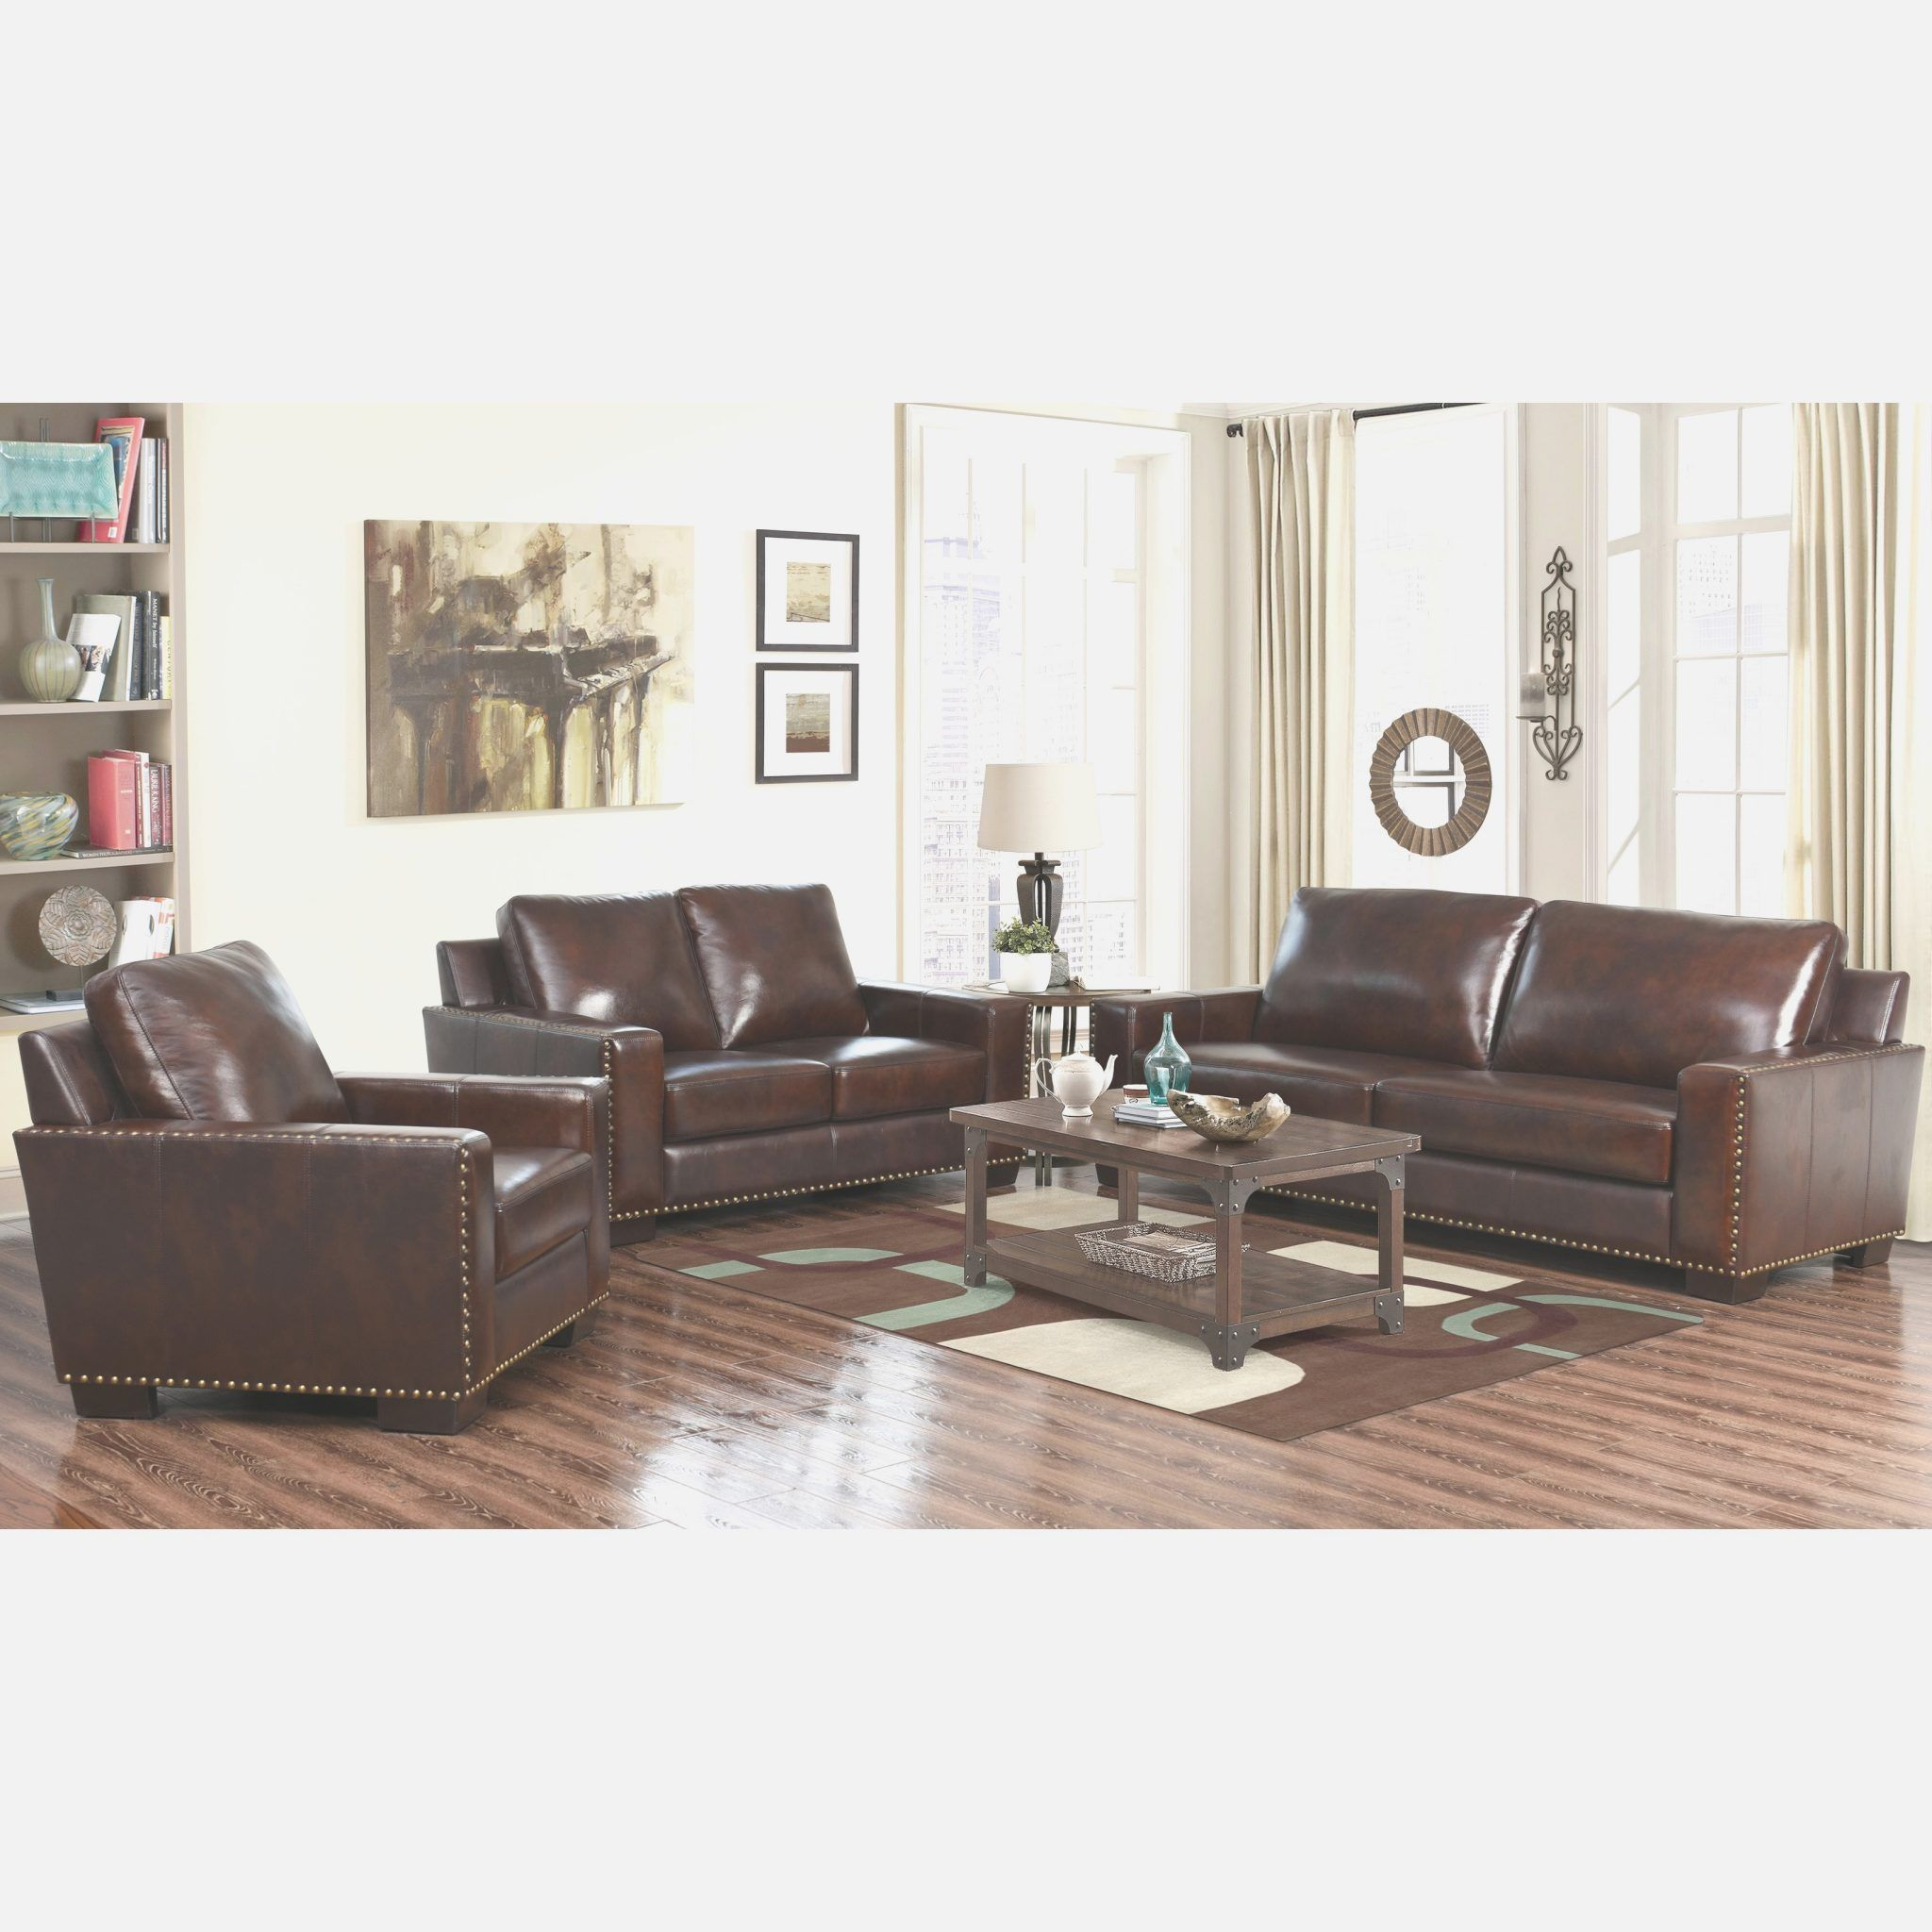 Top Grain Leather Living Room Set - abbyson living barrington 3 ...